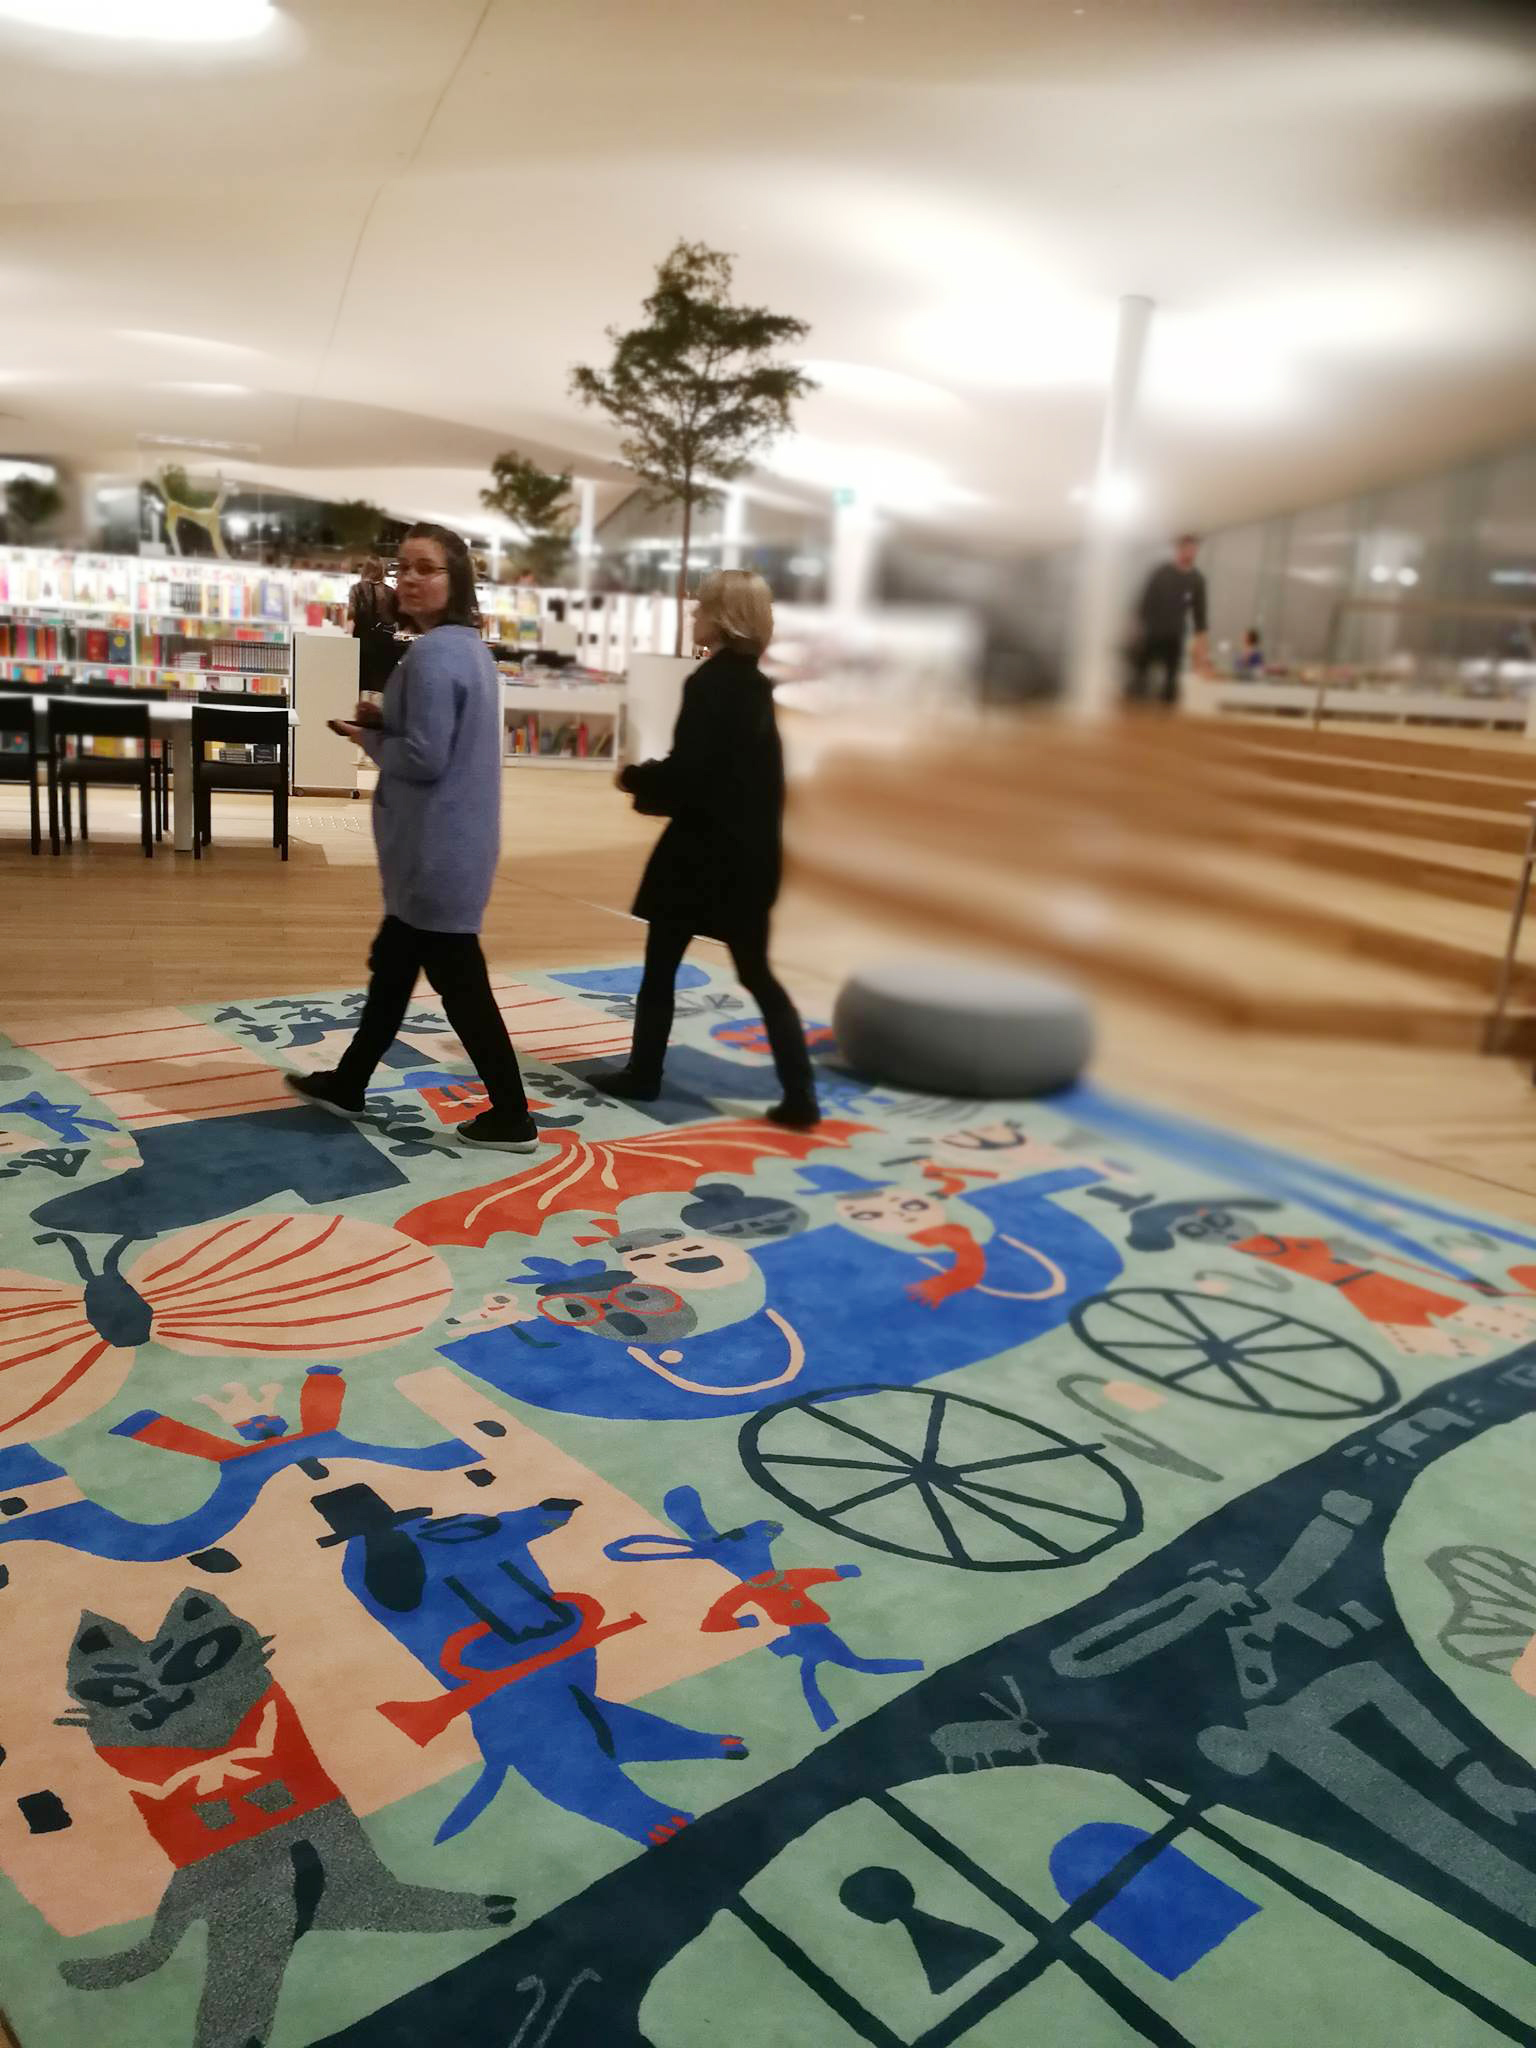 Travel companions in the carpet design for OODI, new central library of Helsinki (2018).